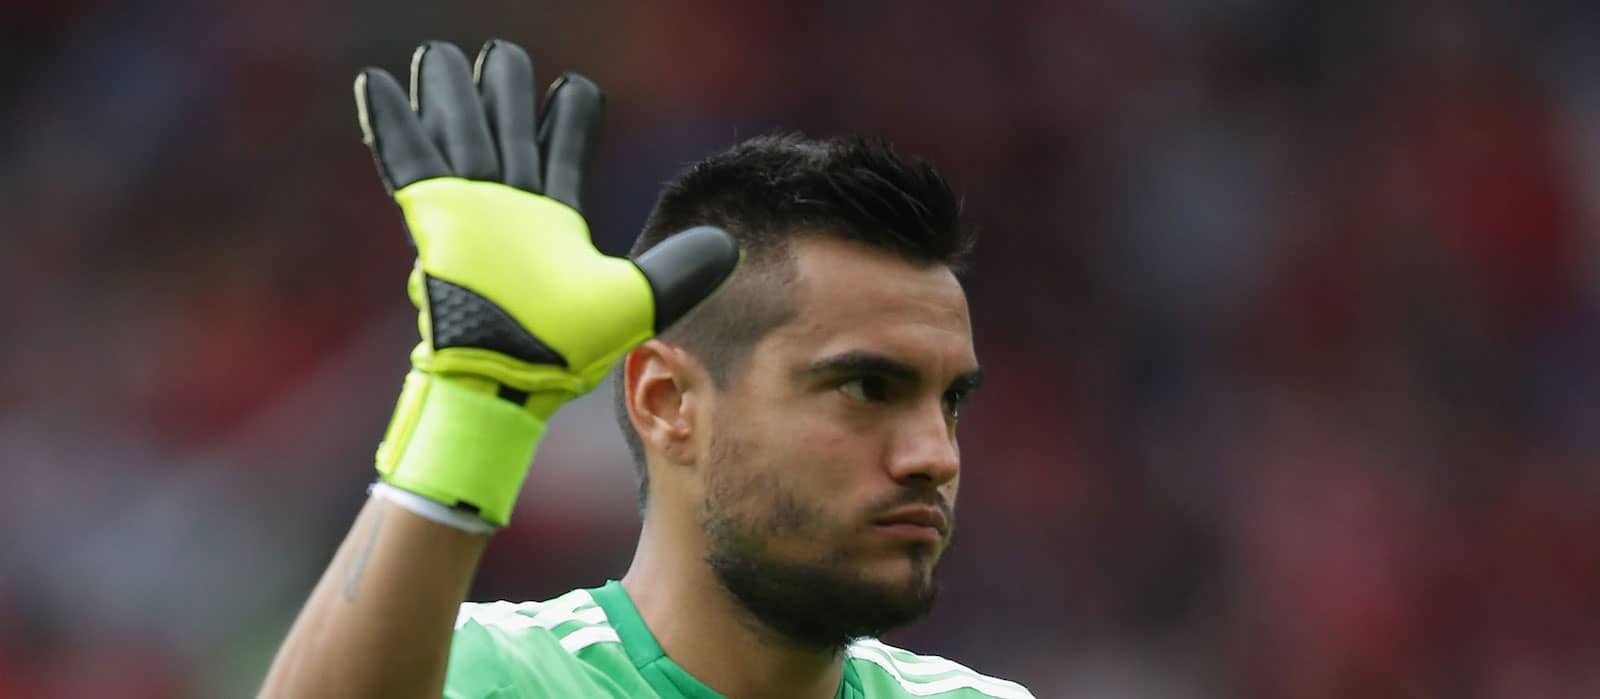 Sergio Romero looks ahead to facing former club Sampdoria in pre-season